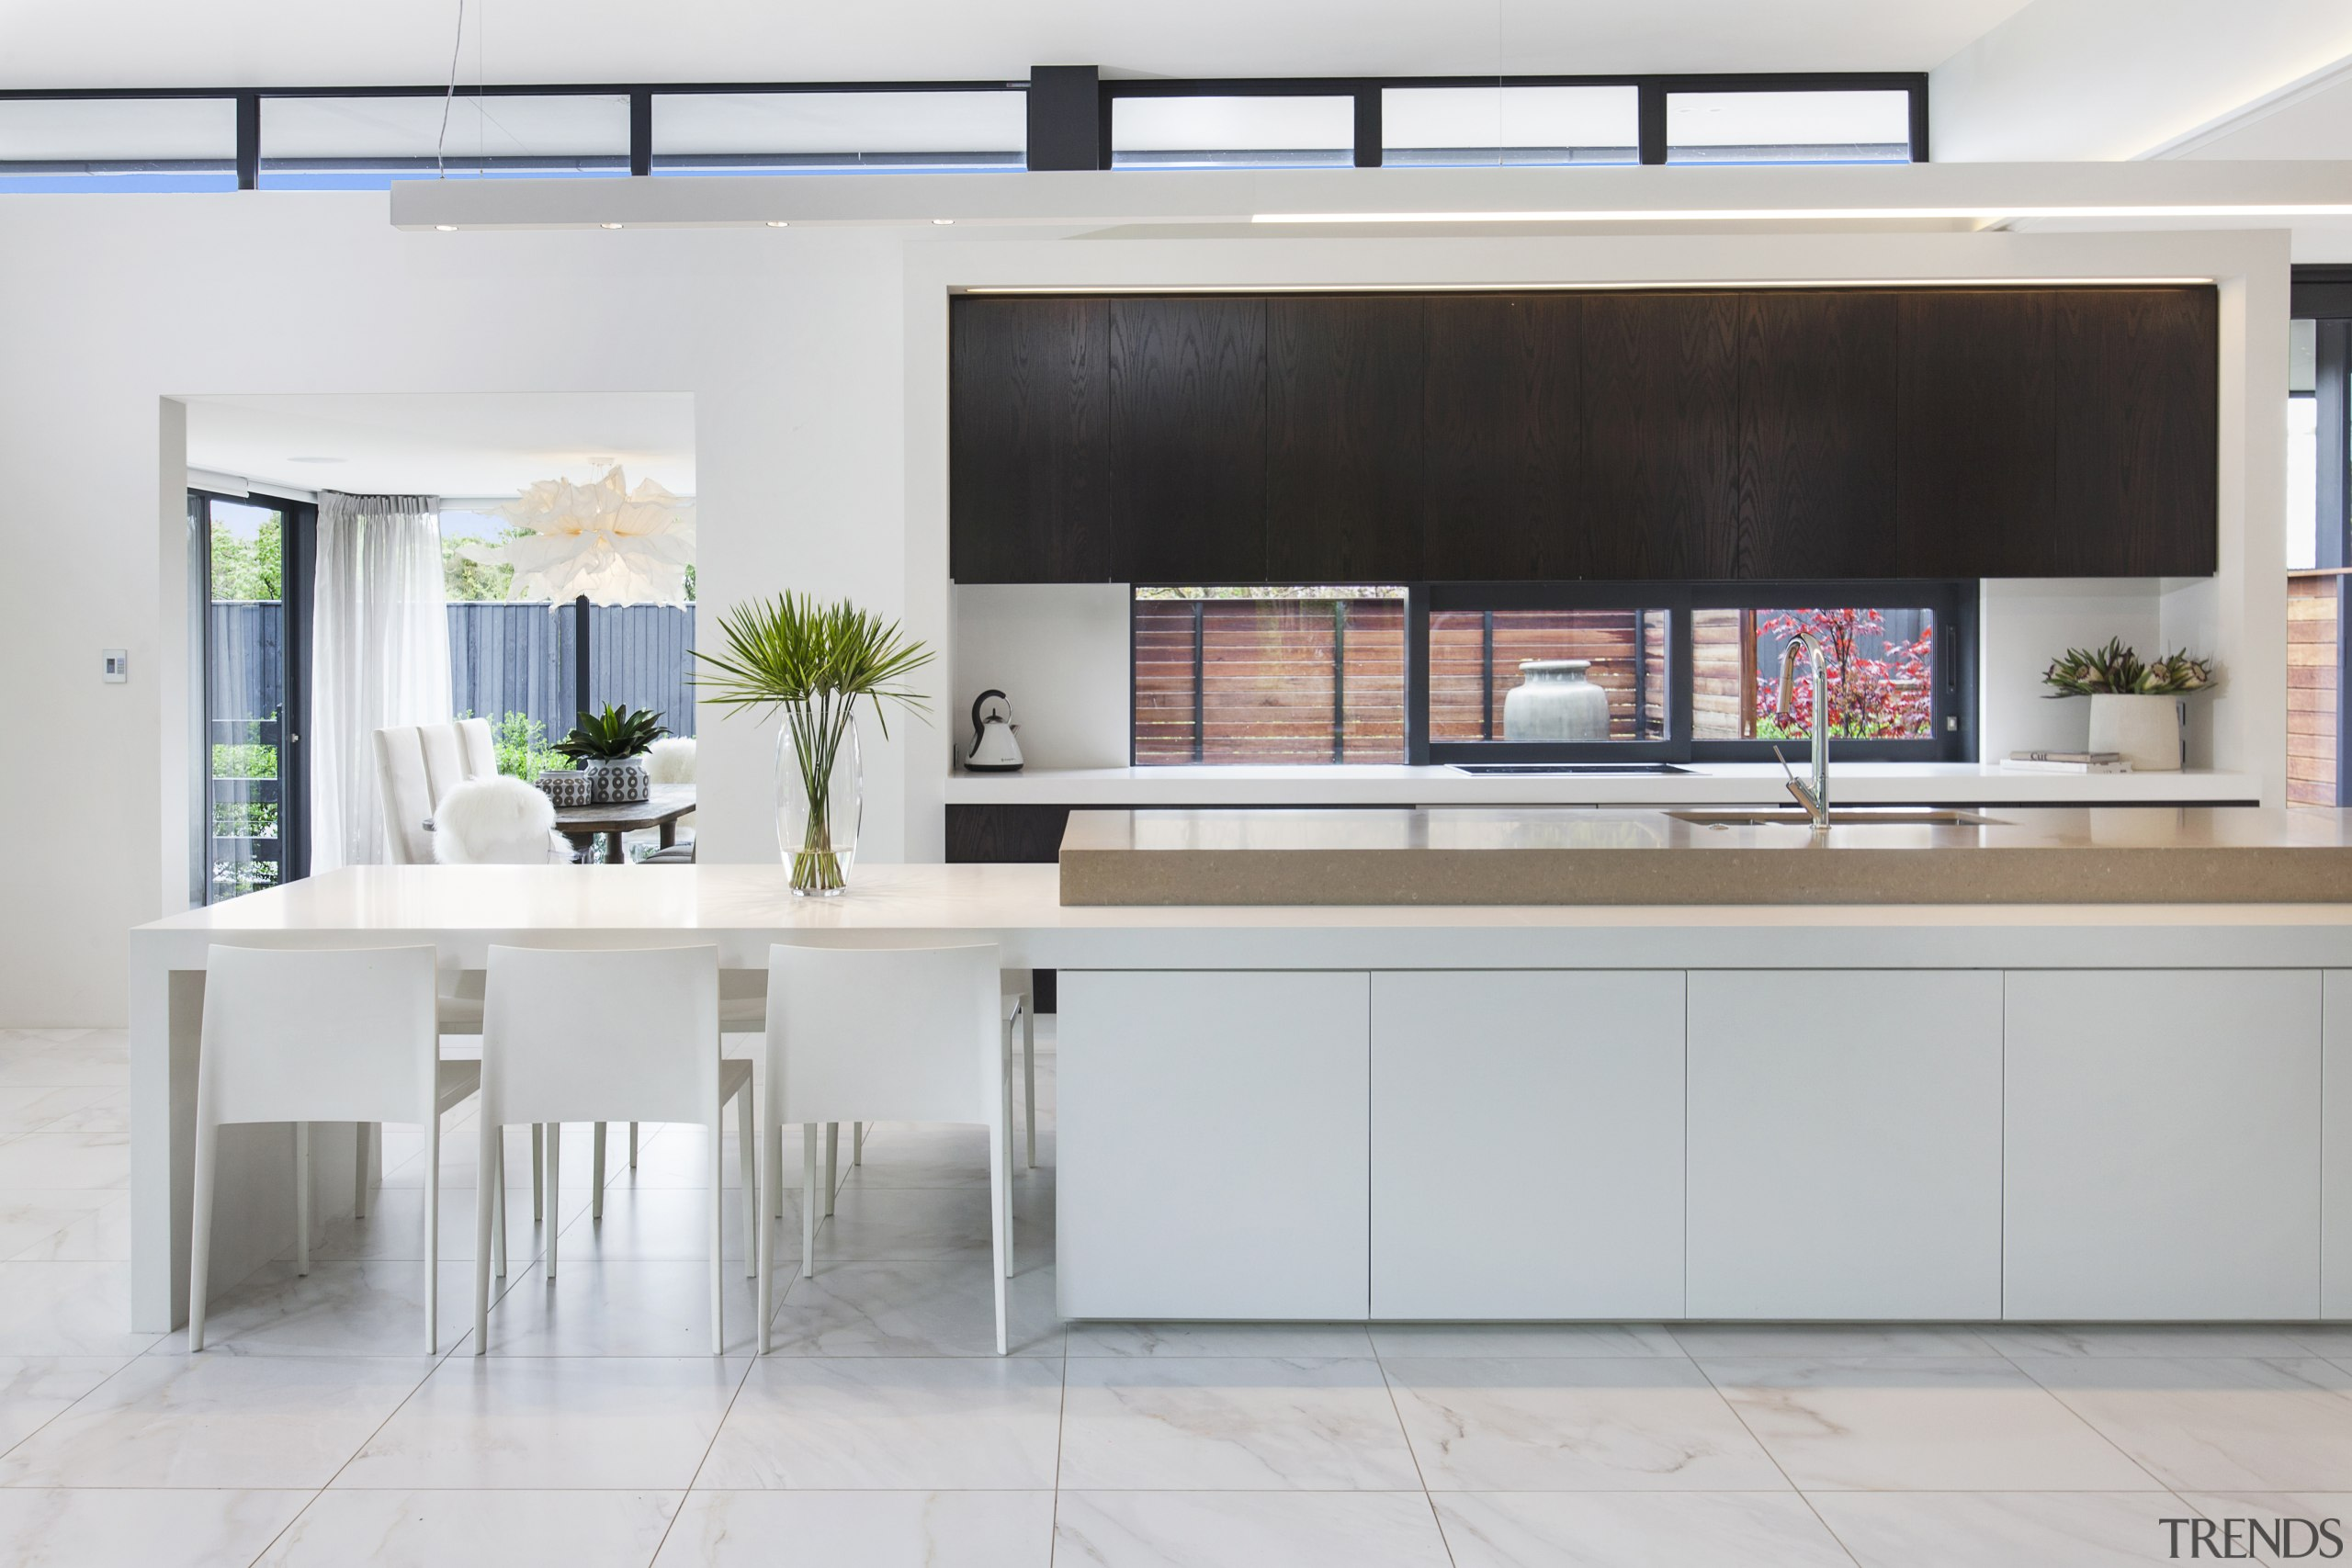 This kitchen features a window as a splashback, architecture, kitchen, cabinetry, countertop, floor, flooring, furniture, home, house, interior design, kitchen, dining table, tile, white, gray, O'Neil Architecture